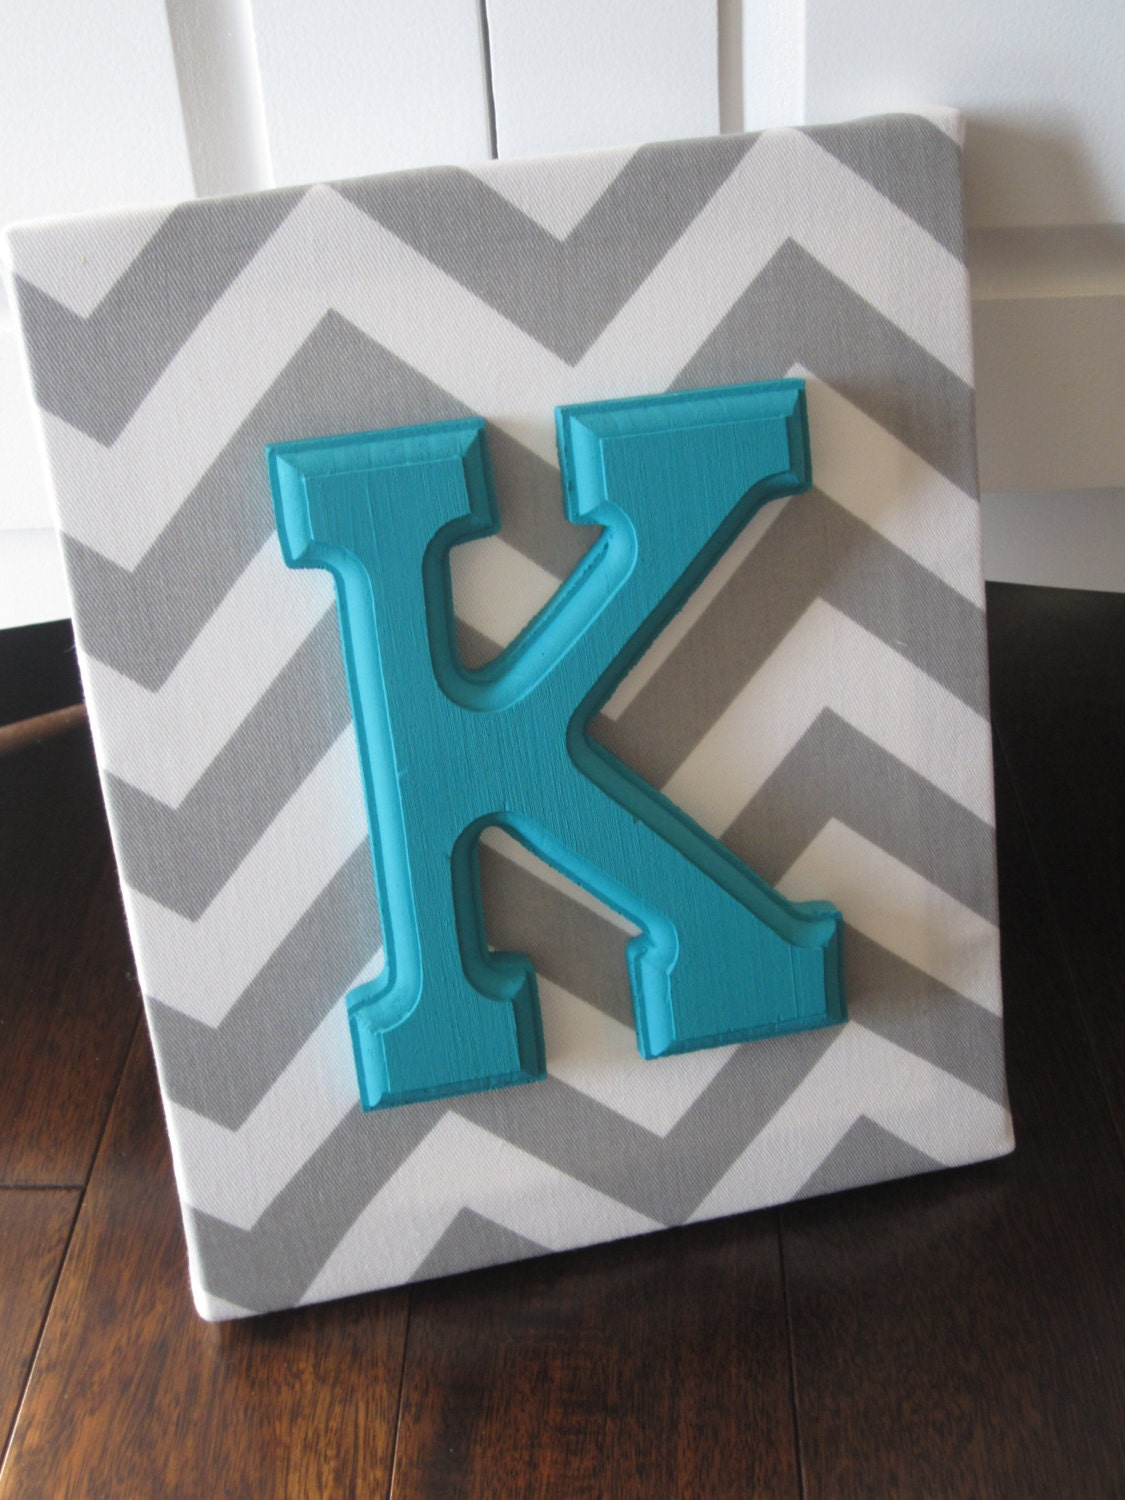 Nursery Decor Hanging Wall Letters : Letter c by nursery pe on etsy